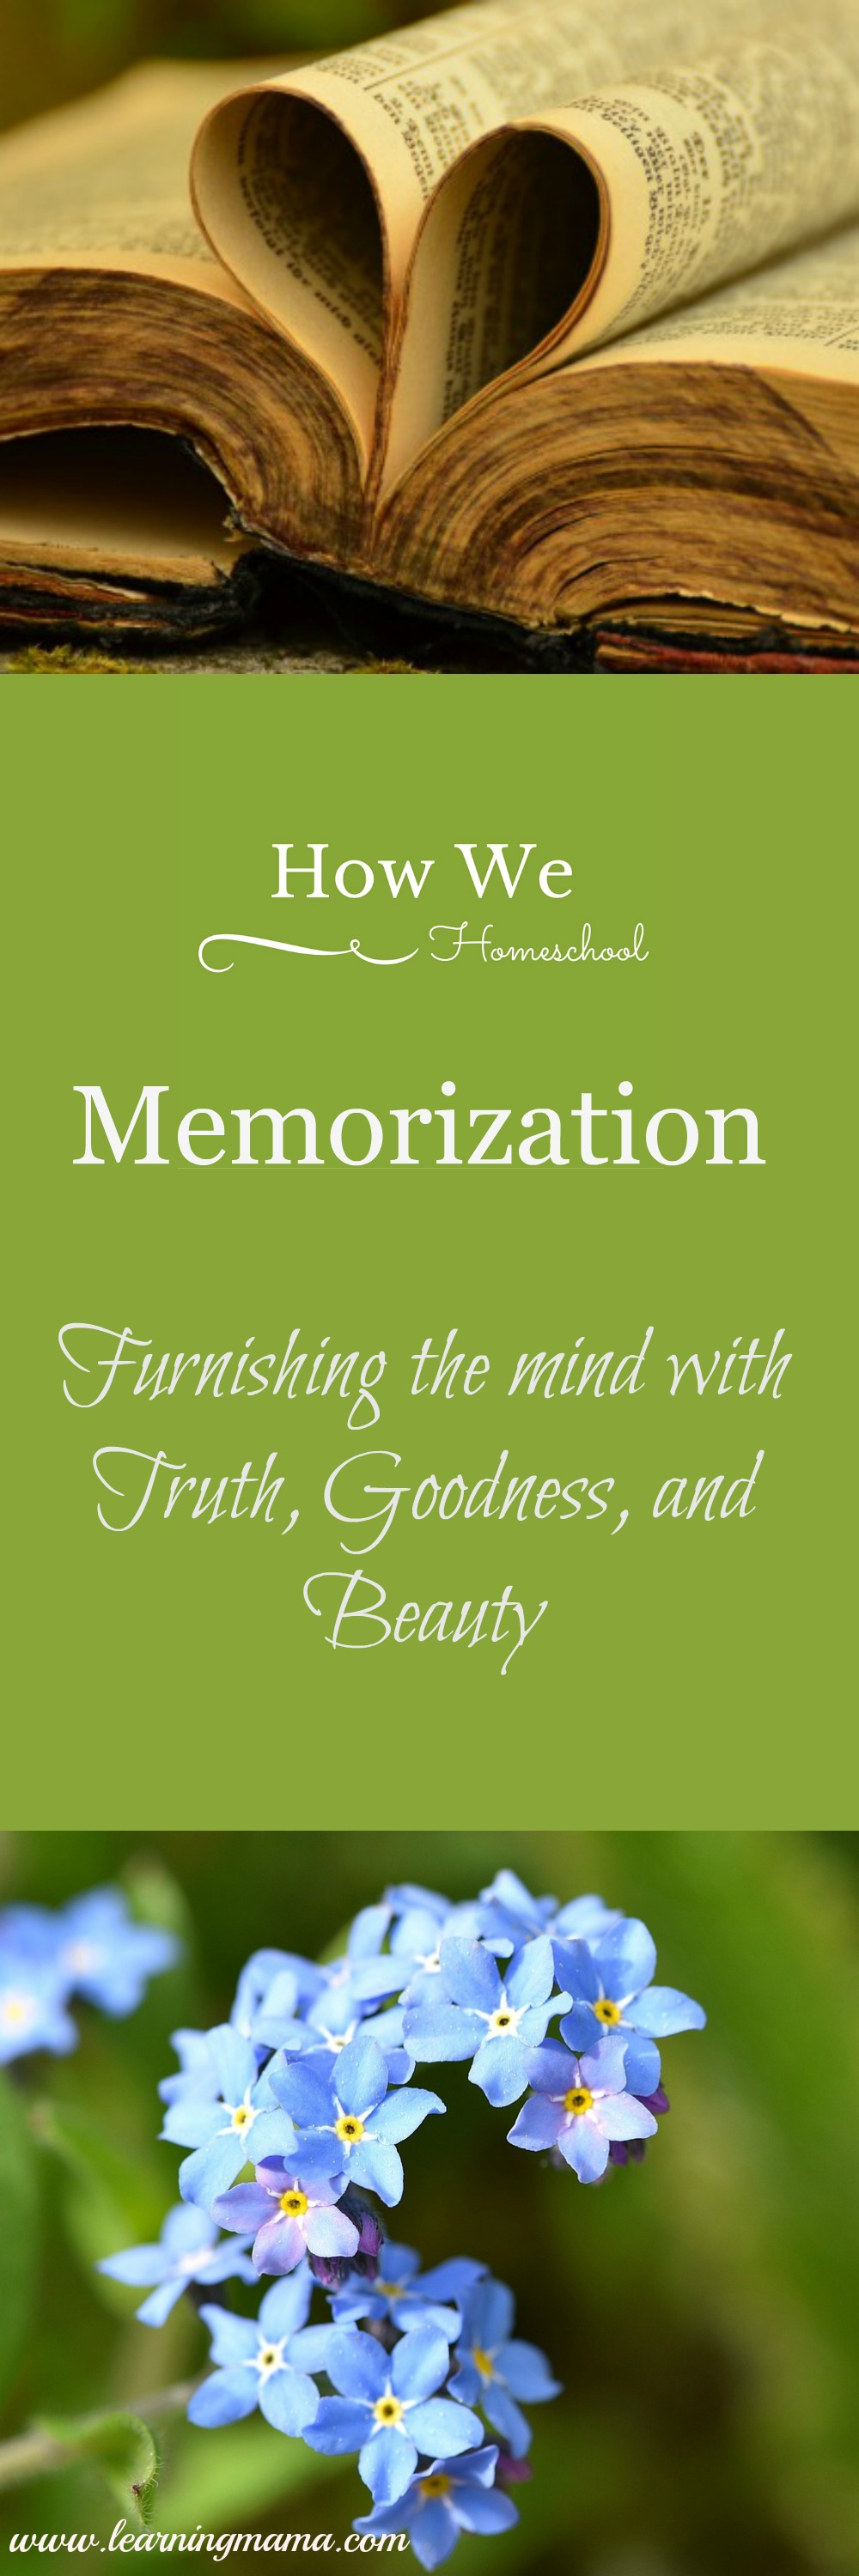 Memorization is NOT an antiquated or useless educational method! Memorization furnishes the mind with valuable ideas